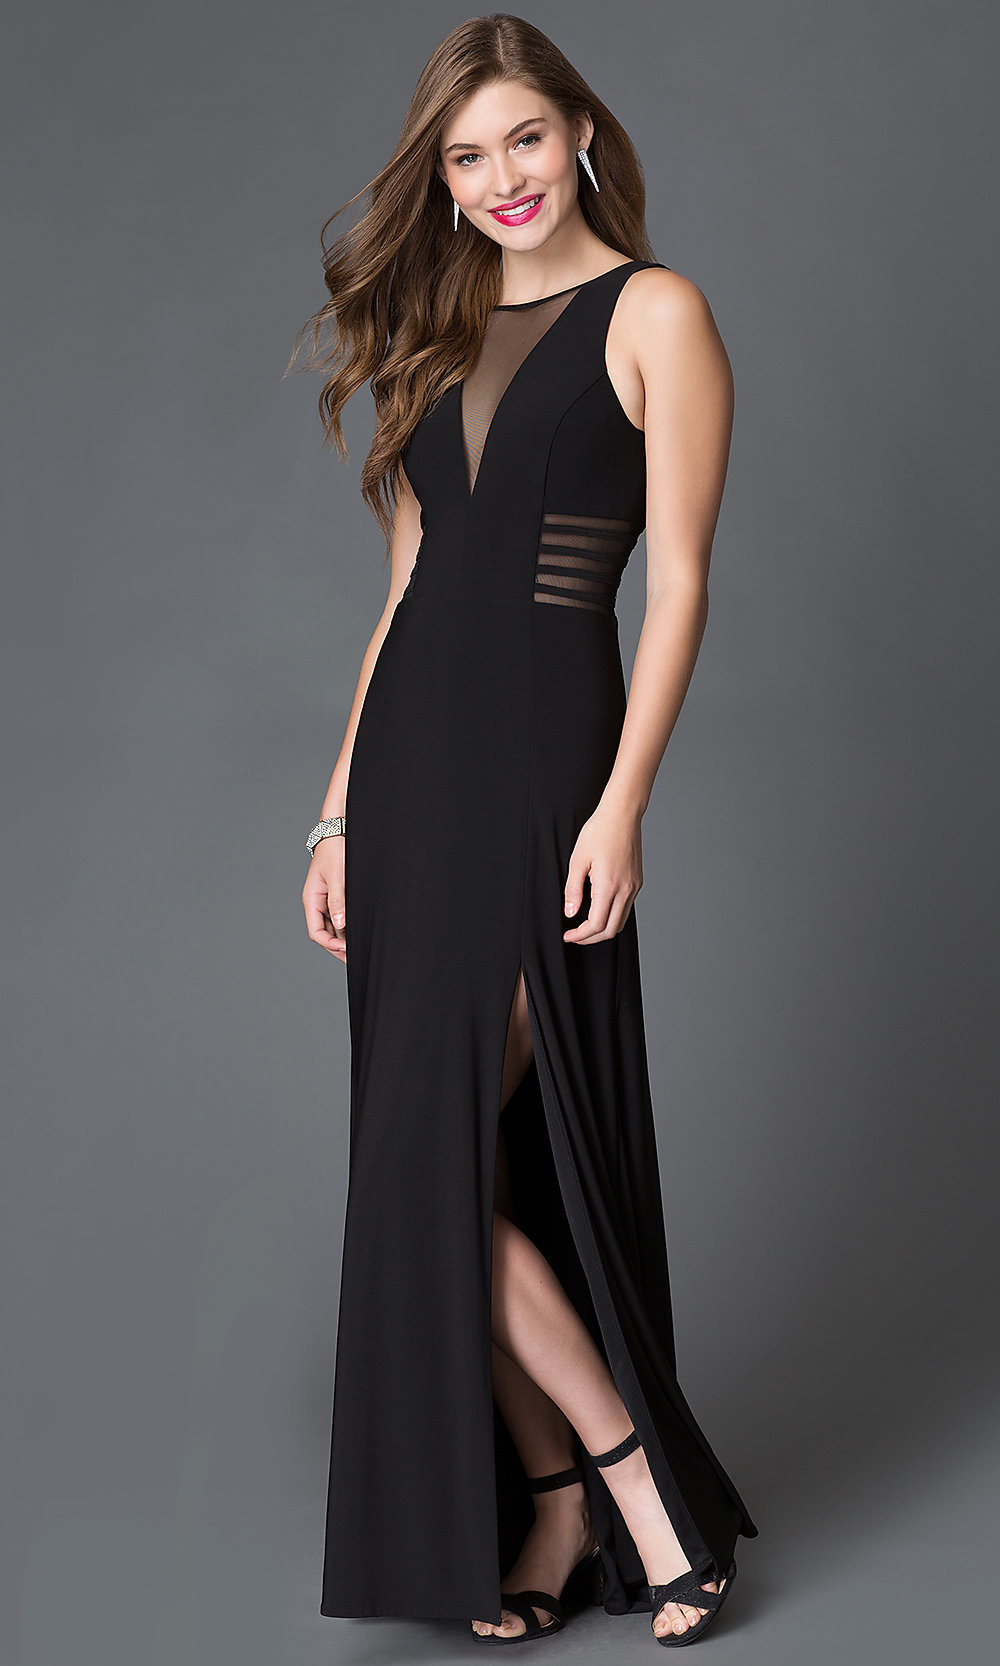 Black Illusion Cut-Out Prom Dress- PromGirl